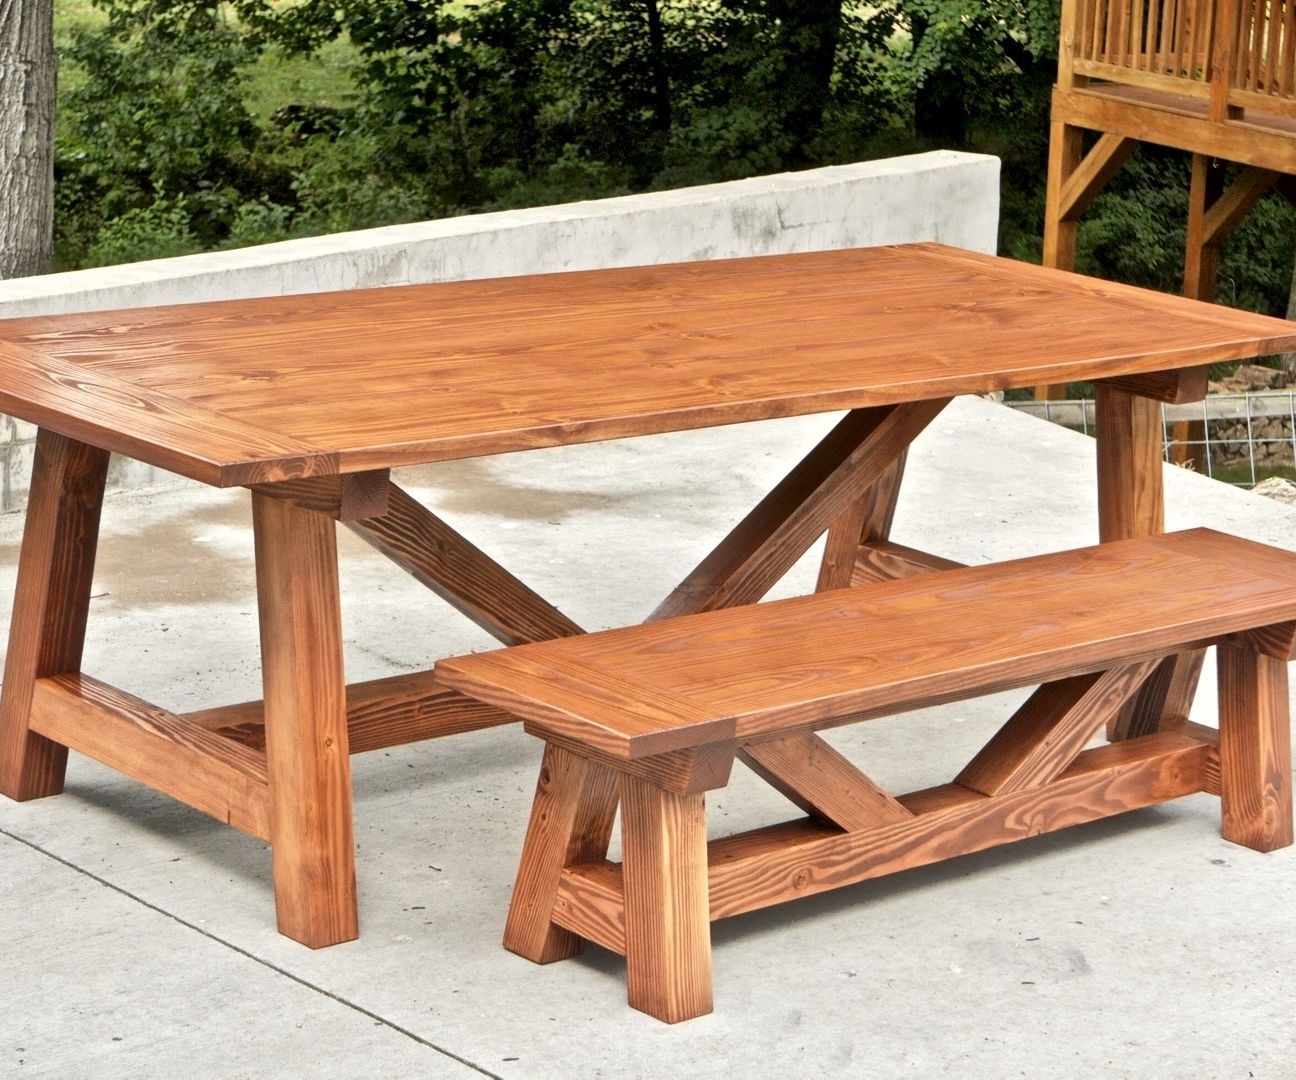 How To Build A Farmhouse Table And Benches For 250 Woodworking Diy 10 Steps With Pictures Instructables